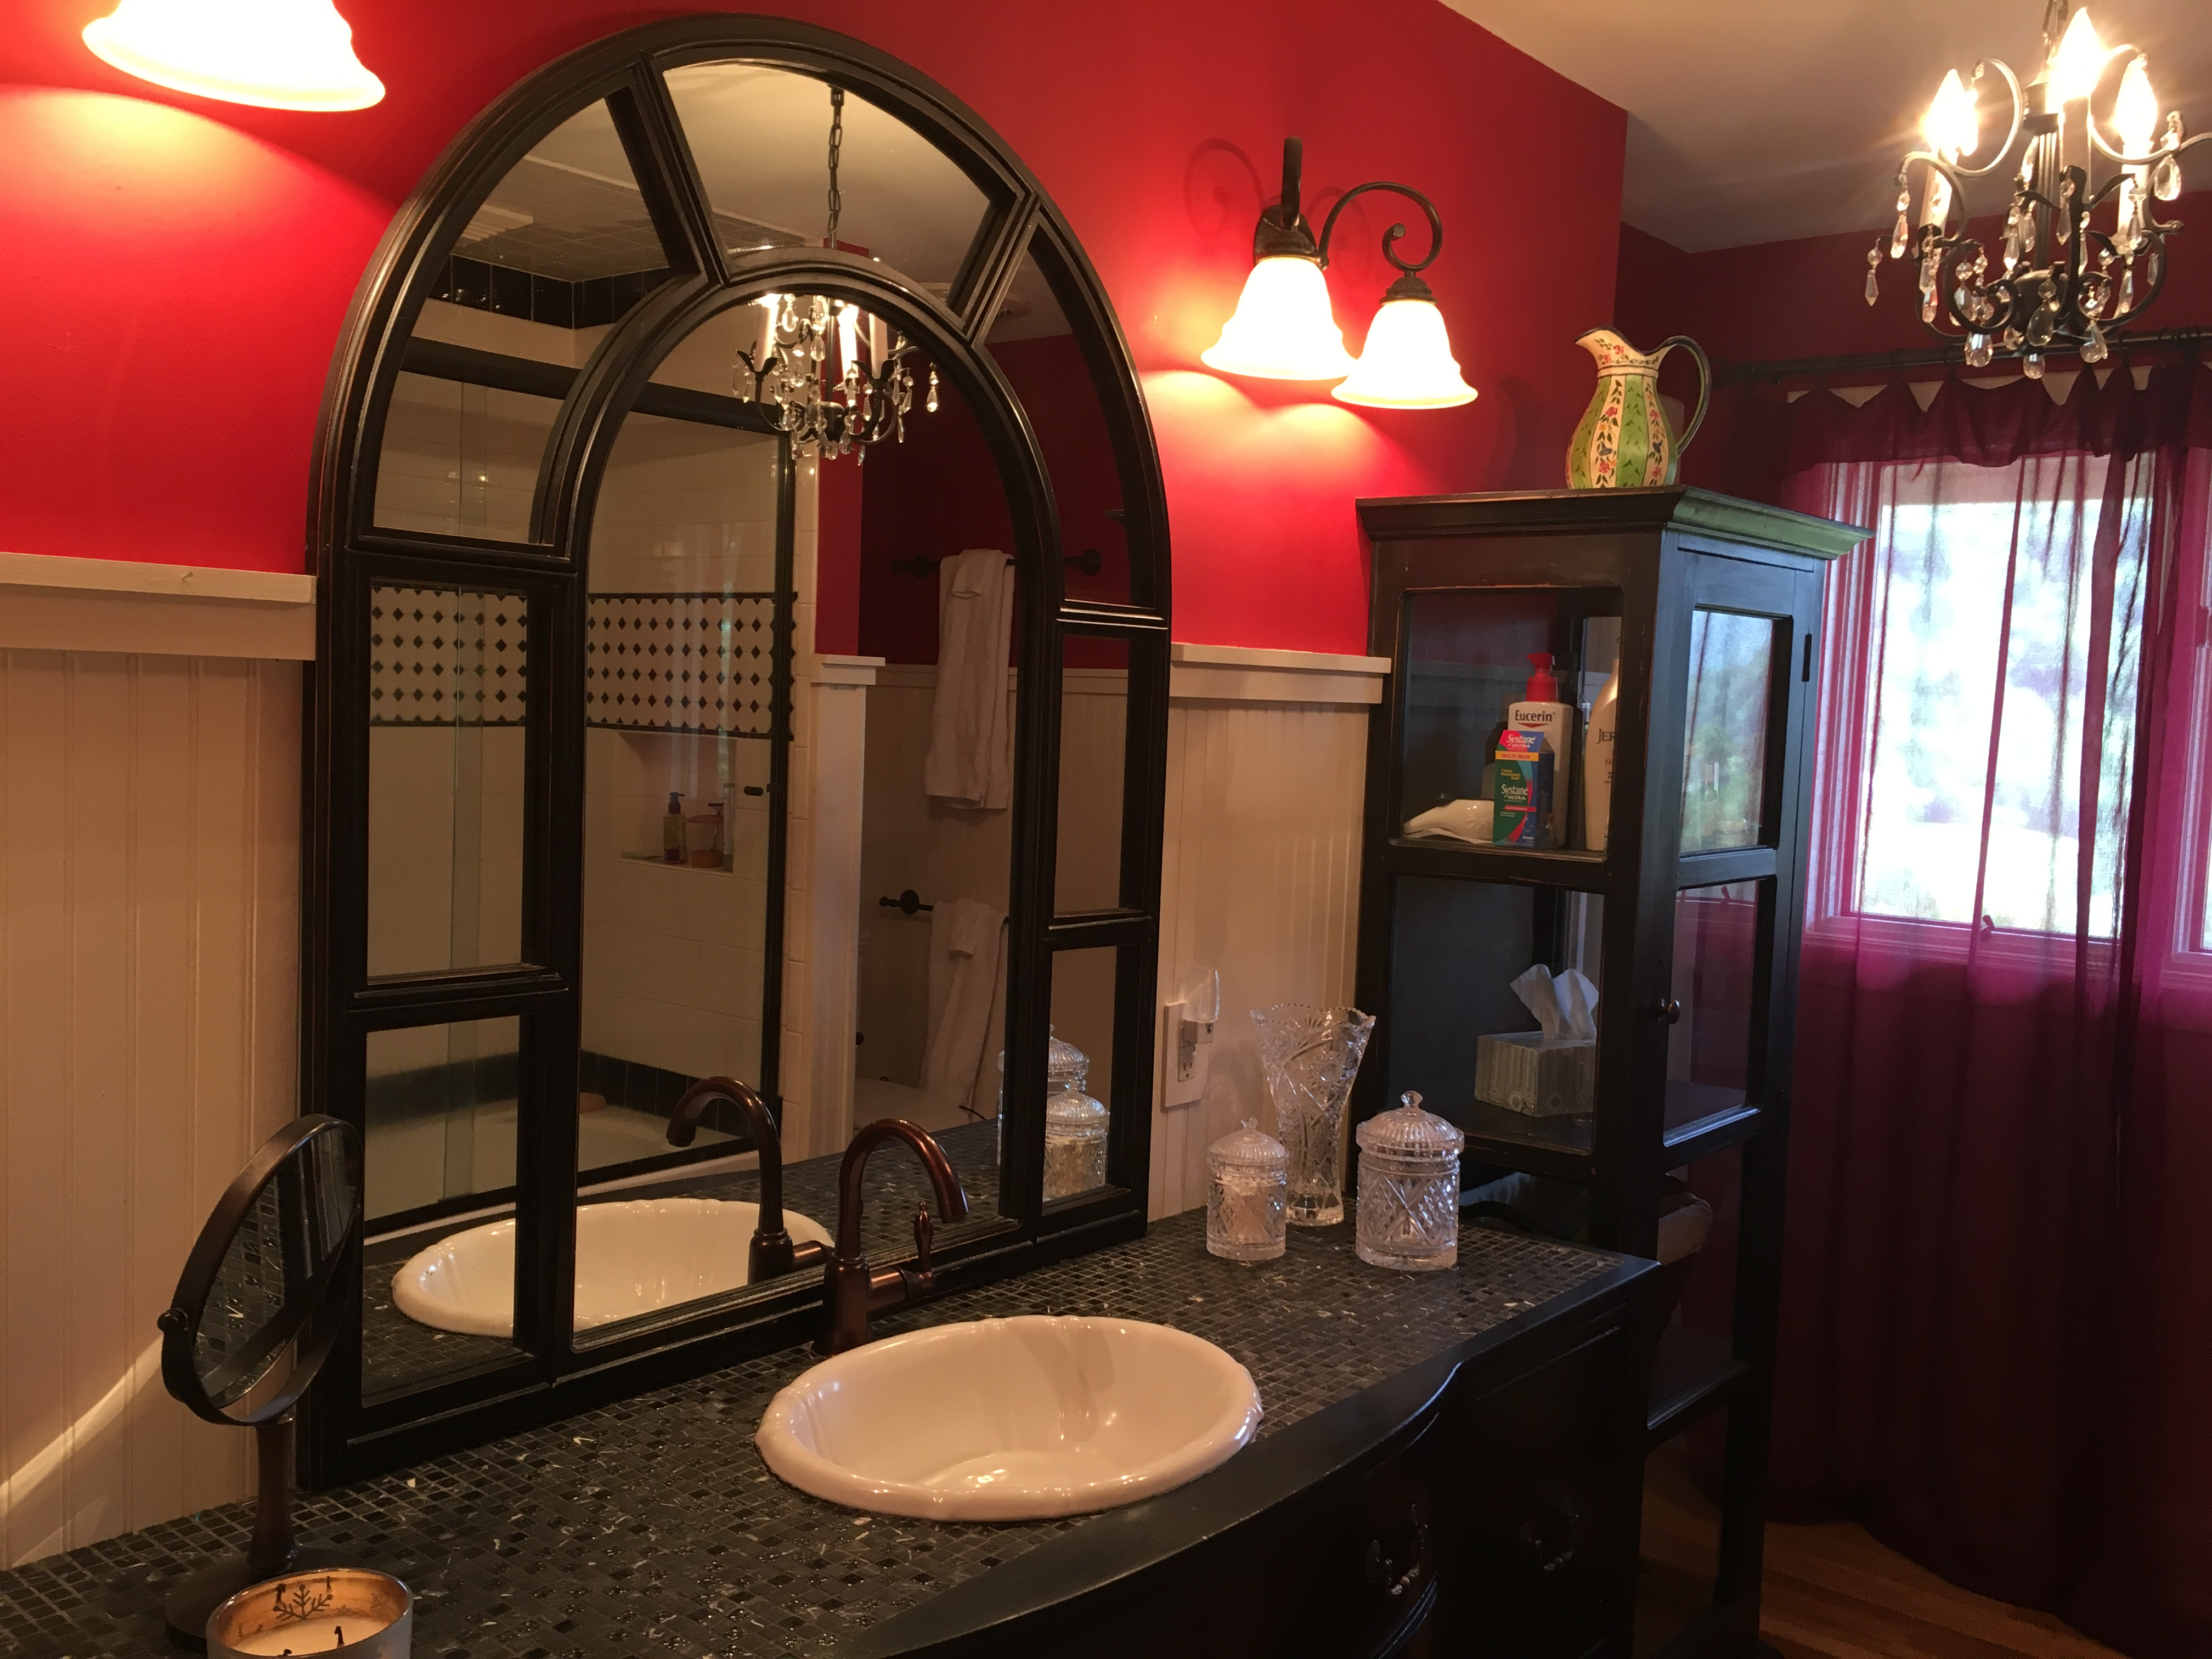 hall bathroom outfitted with antique elements